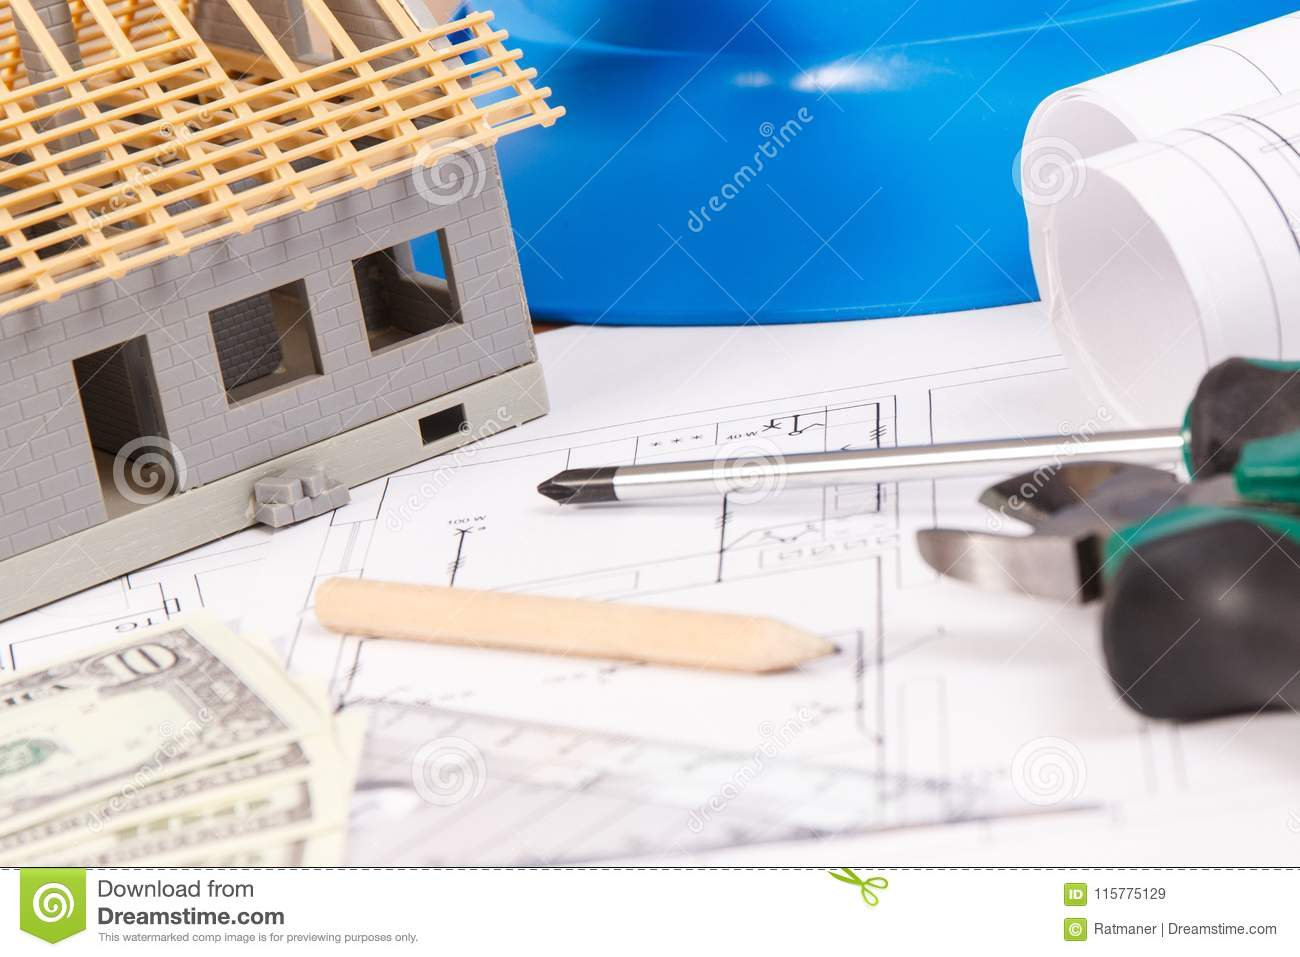 Electrical Drawings Work Tools And Accessories Small House Drawing Of Currencies Dollar Building Home